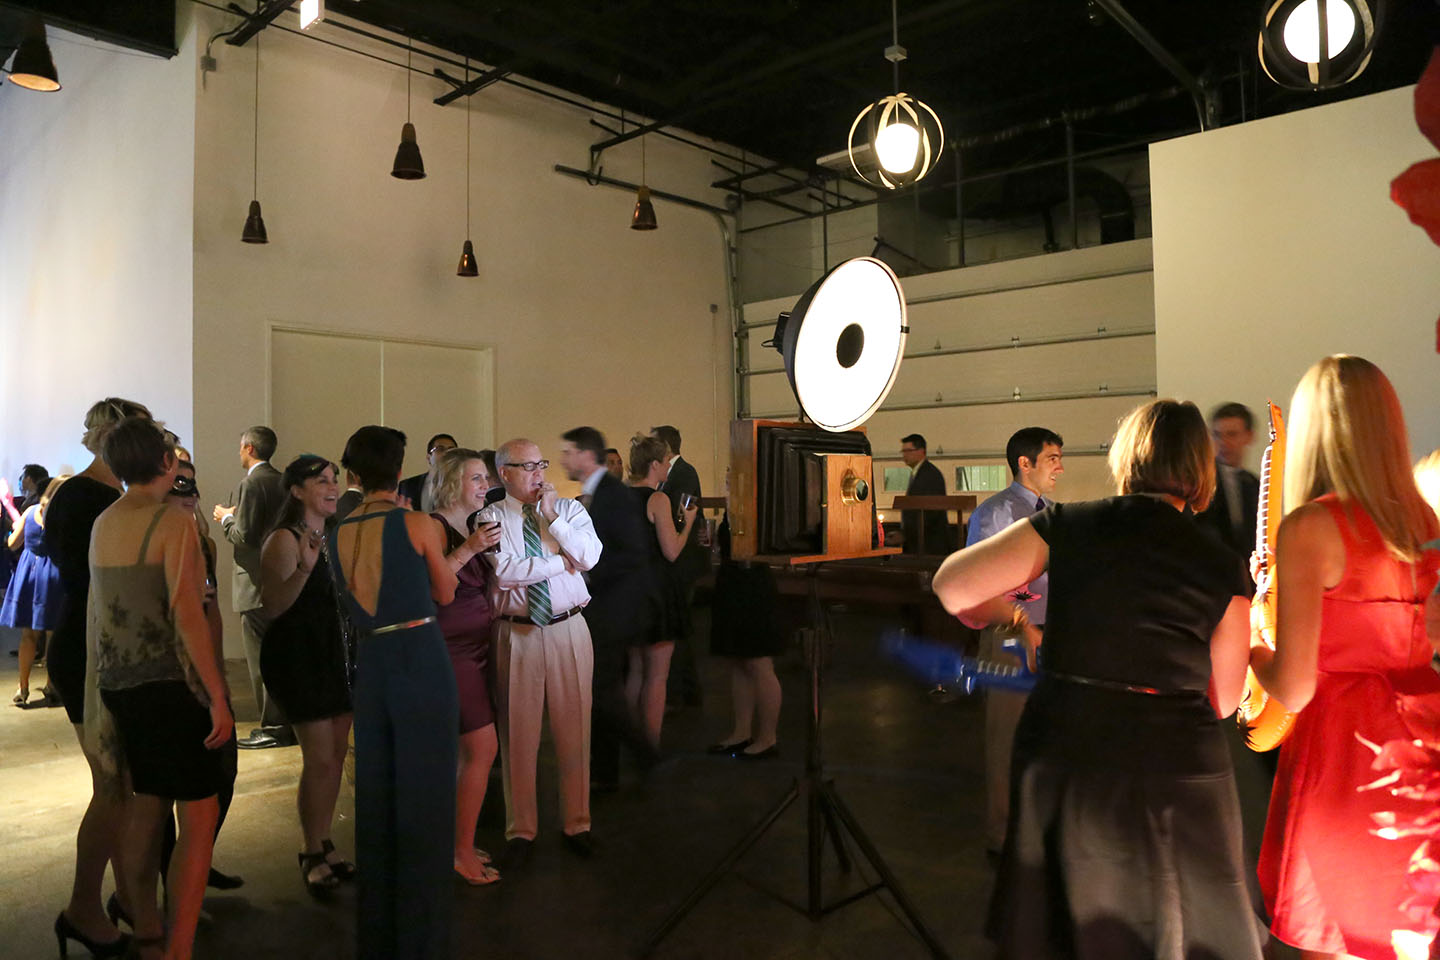 Wedding guests gather around the photo booth at Revolution Brewing!